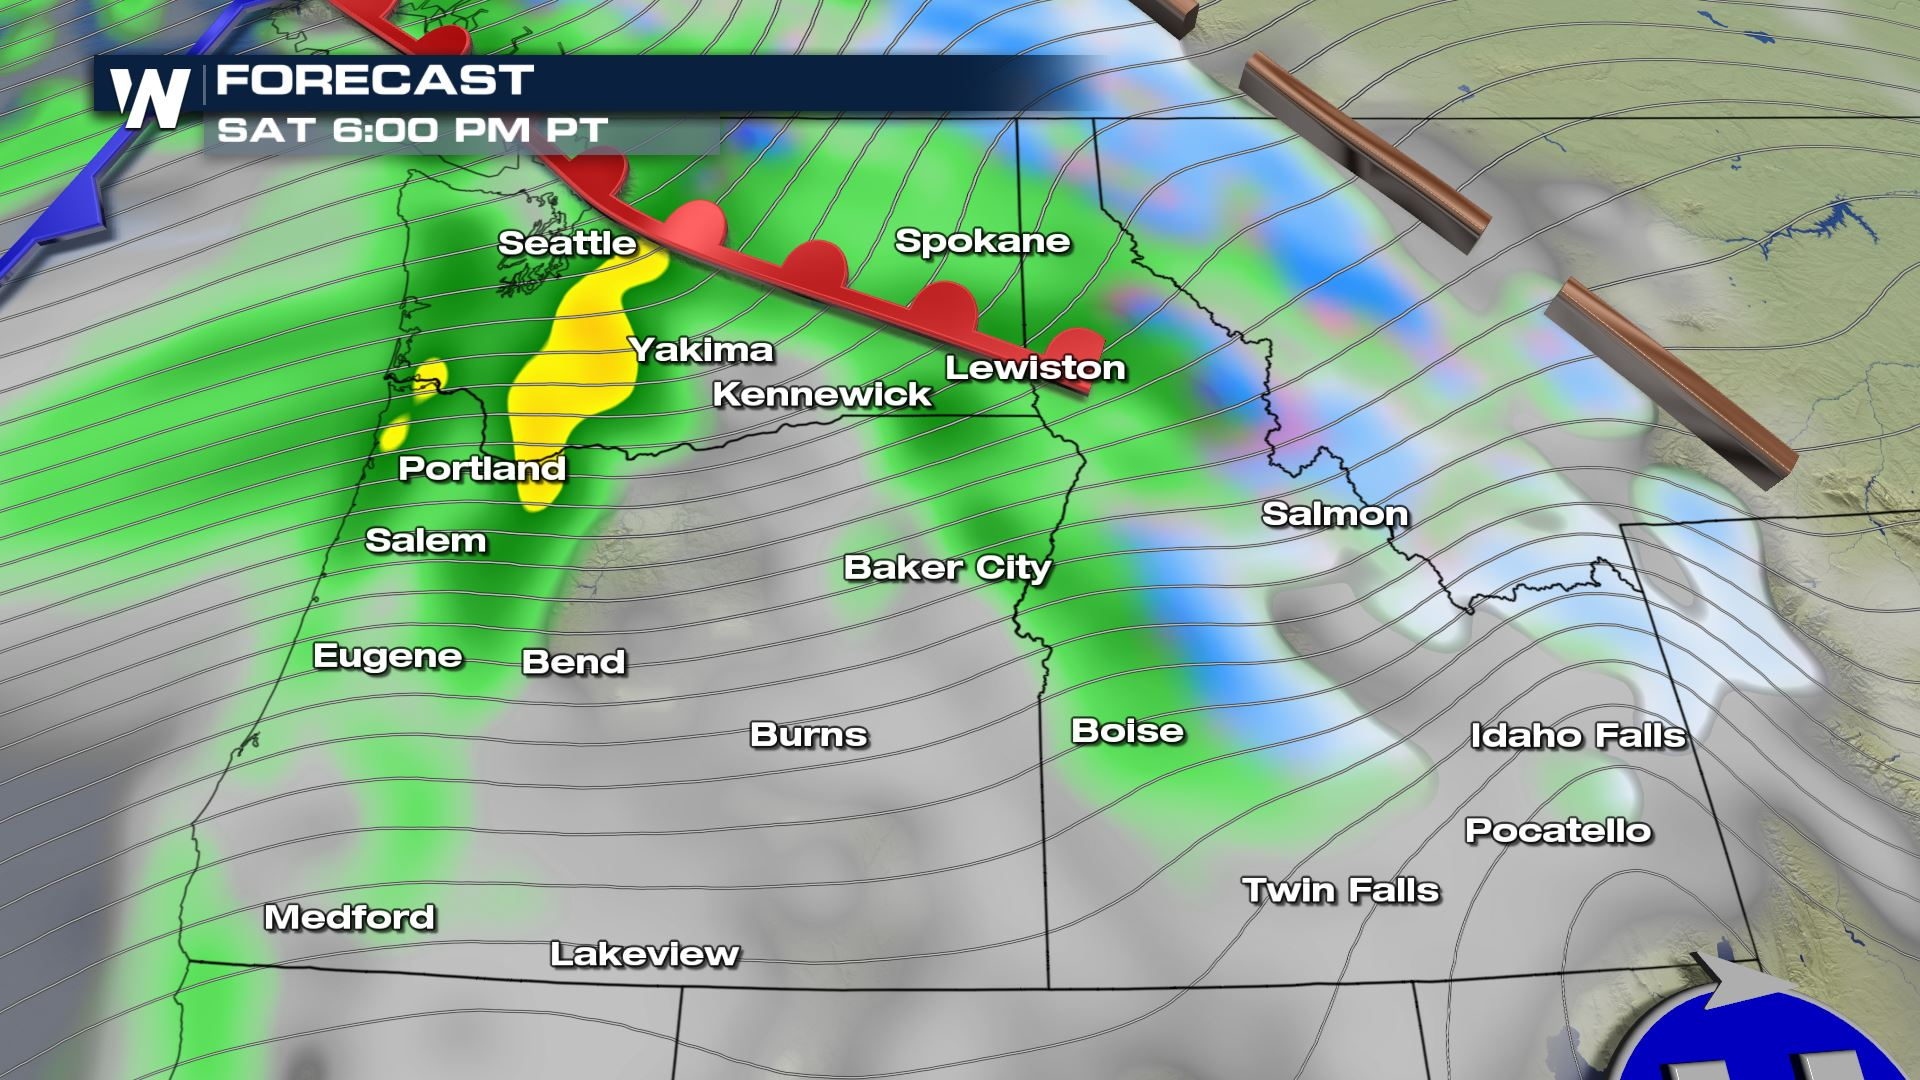 Top Weather Stories for October 19, 2017 - WeatherNation